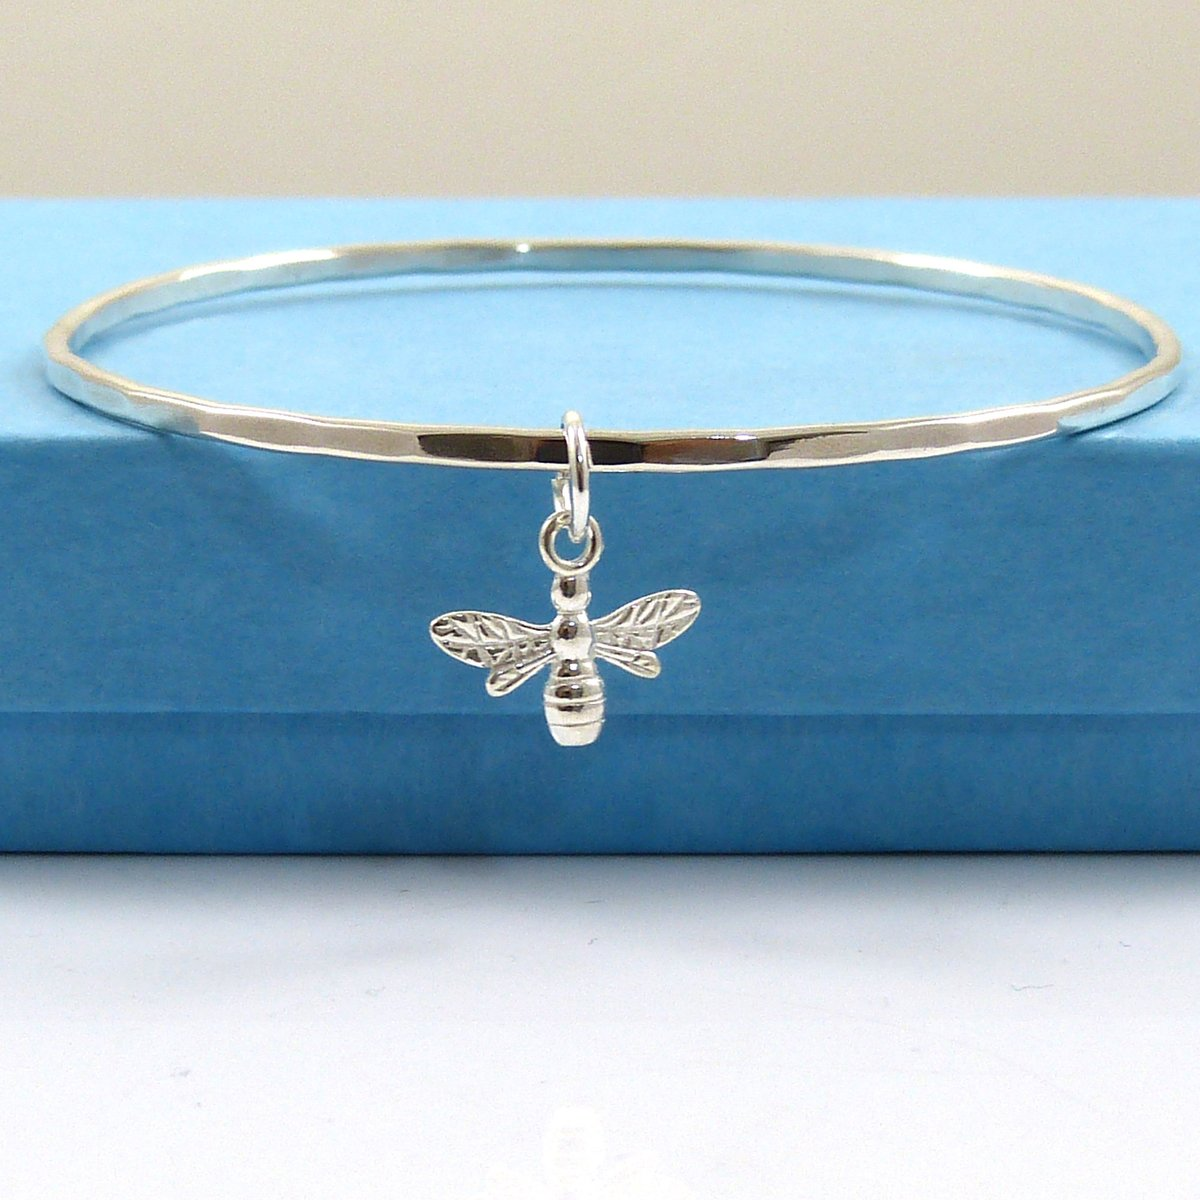 Sterling Silver Bee Bracelet Bangle - The Strandline https://etsy.me/2LyZIyr  #EarlyBiz #giftideas #seaglassjewellery #seaglassnecklace #womaninbiz #thestrandline #Northumberland #shopindie #supportsmallbusiness #NauticalJewellerypic.twitter.com/J6UHjpJn8m